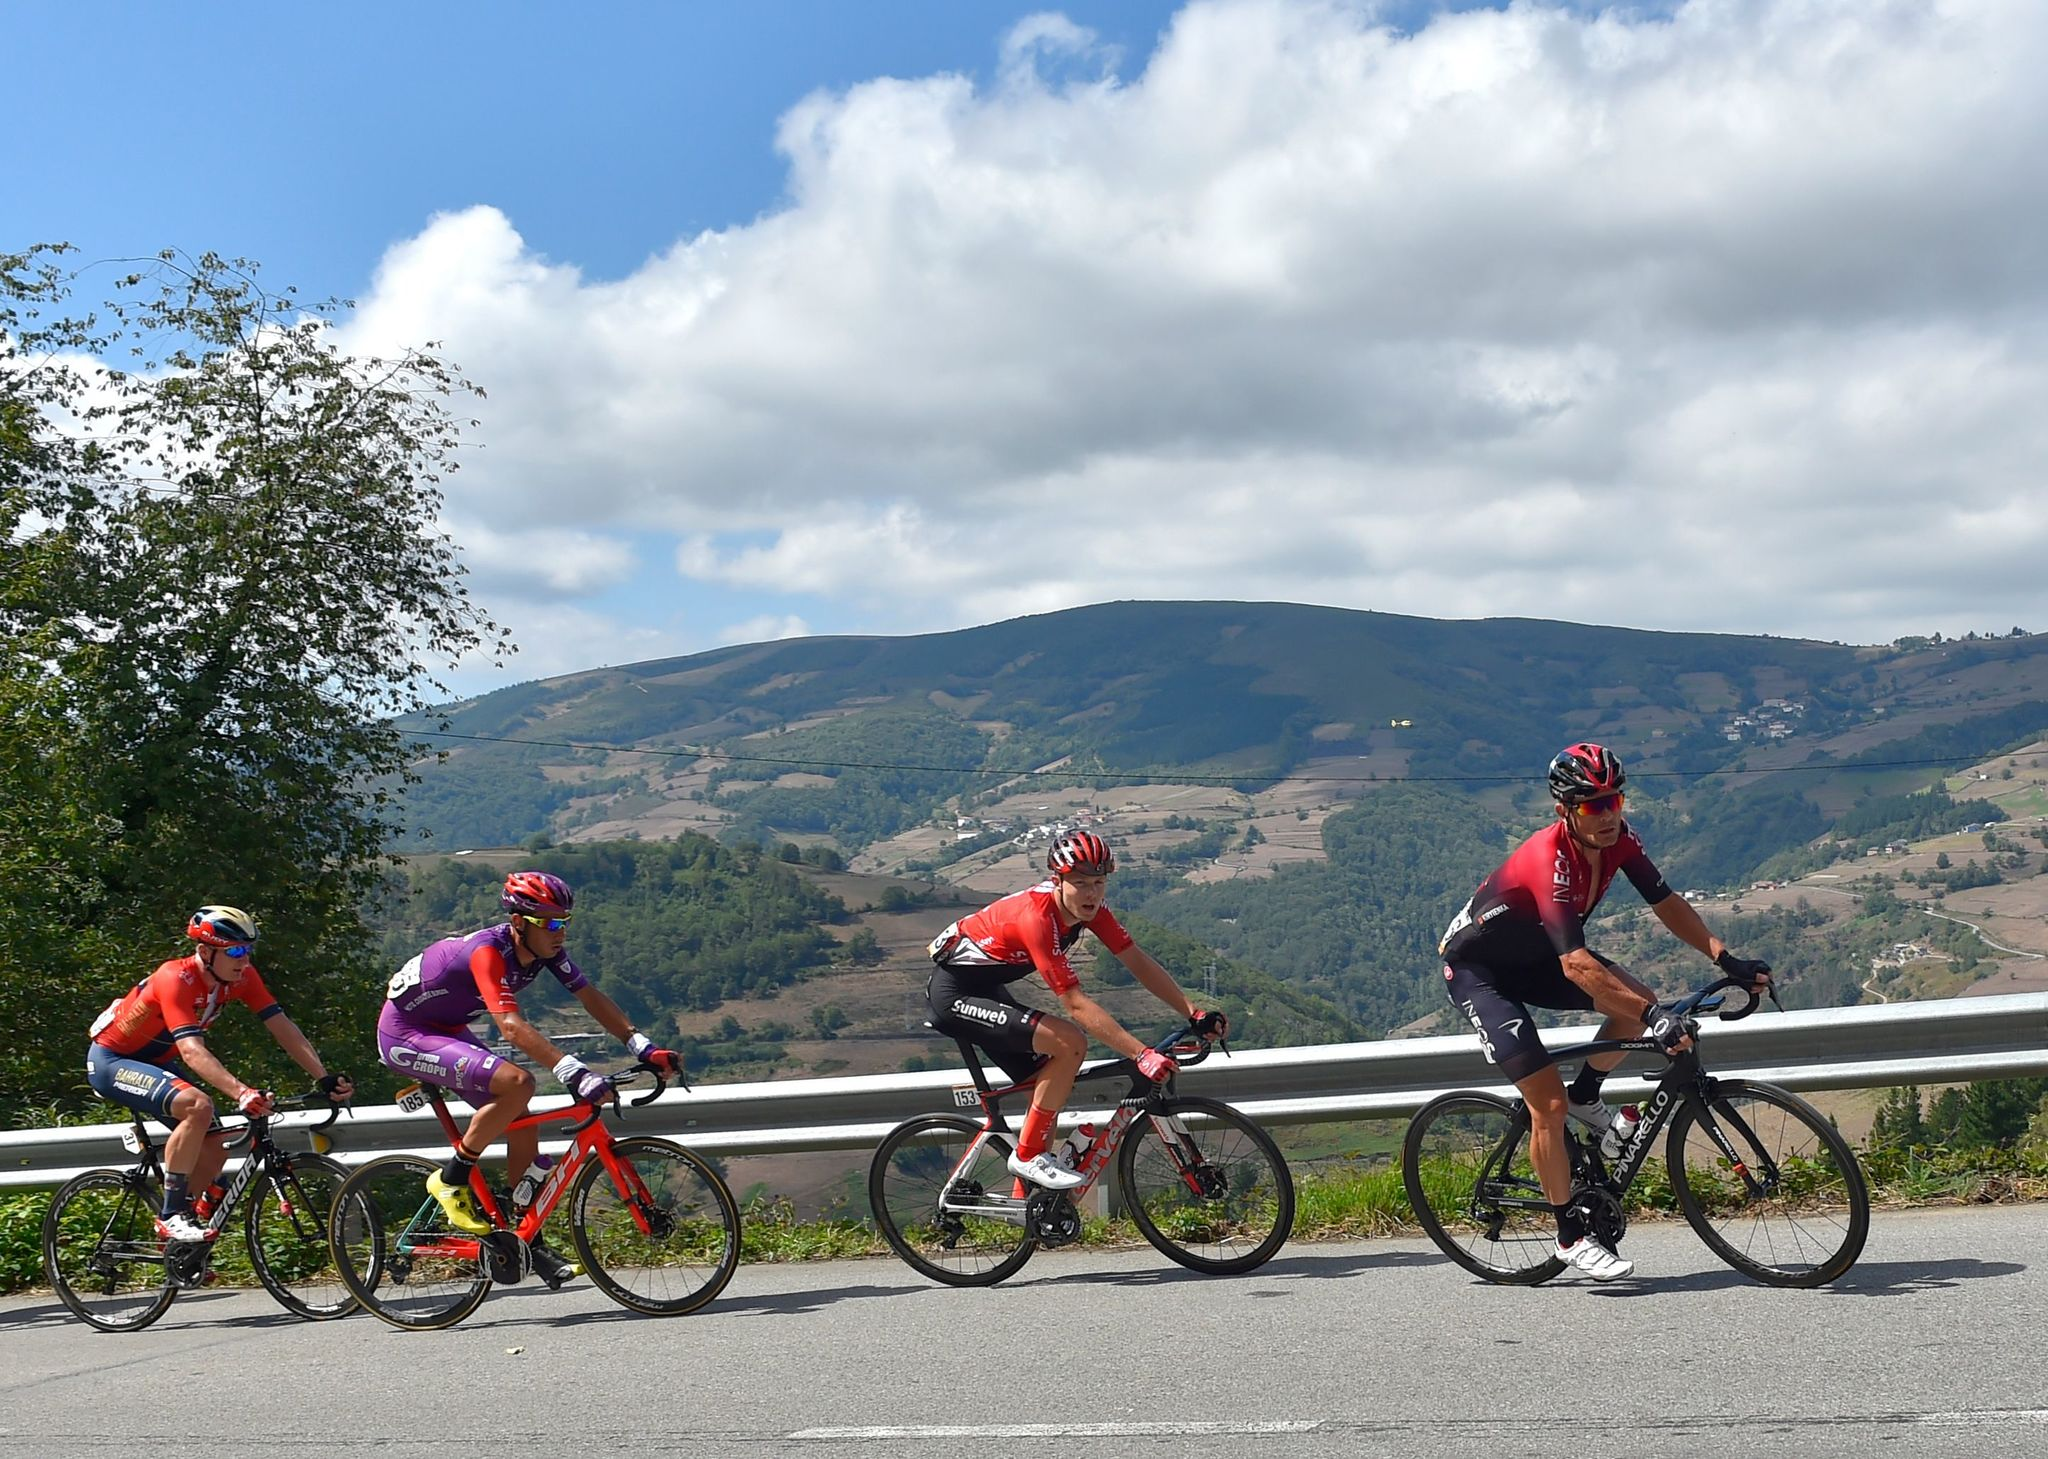 (L to R) Team Bahrain rider Ukraines Mark Padun, Team Burgos - BH rider Spains Jesus Ezquerra, Team Sunweb rider Denmarks Casper Pedersen and Team Ineos rider Belarus Vasil Kiryienka ride ahead of the pack during the 15th stage of the 2019 La <HIT>Vuelta</HIT> cycling Tour of Spain, a 154,4 km race from Tineo to Santuario del Acebo in Cangas del Narcea on September 8, 2019. (Photo by ANDER GILLENEA / AFP)